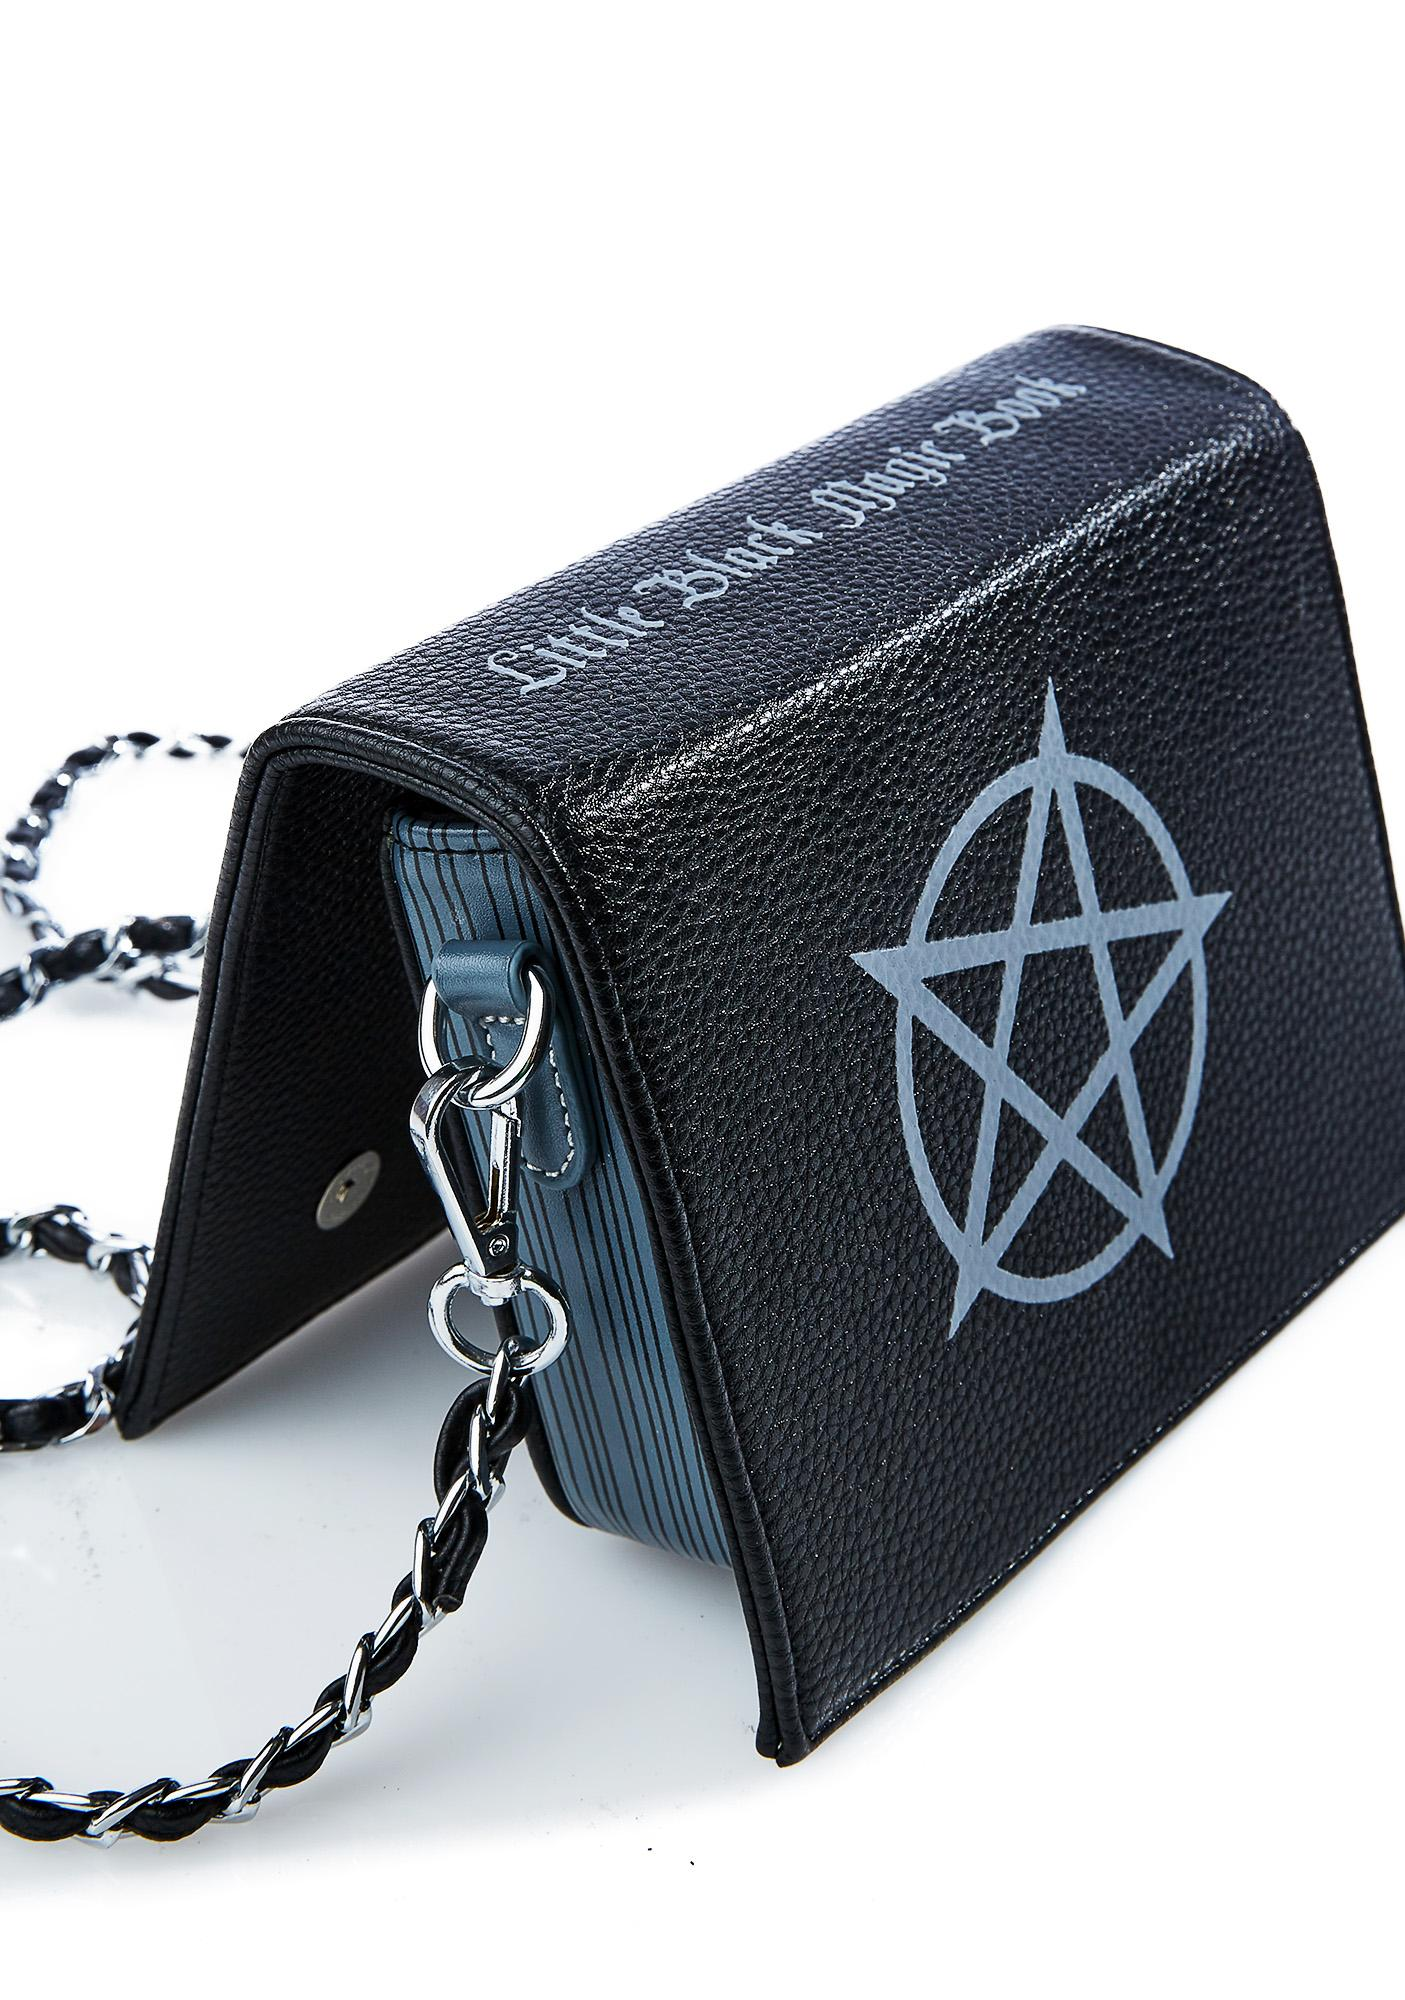 7cb5779d64c9 ... Current Mood Little Black Magic Book Bag ...